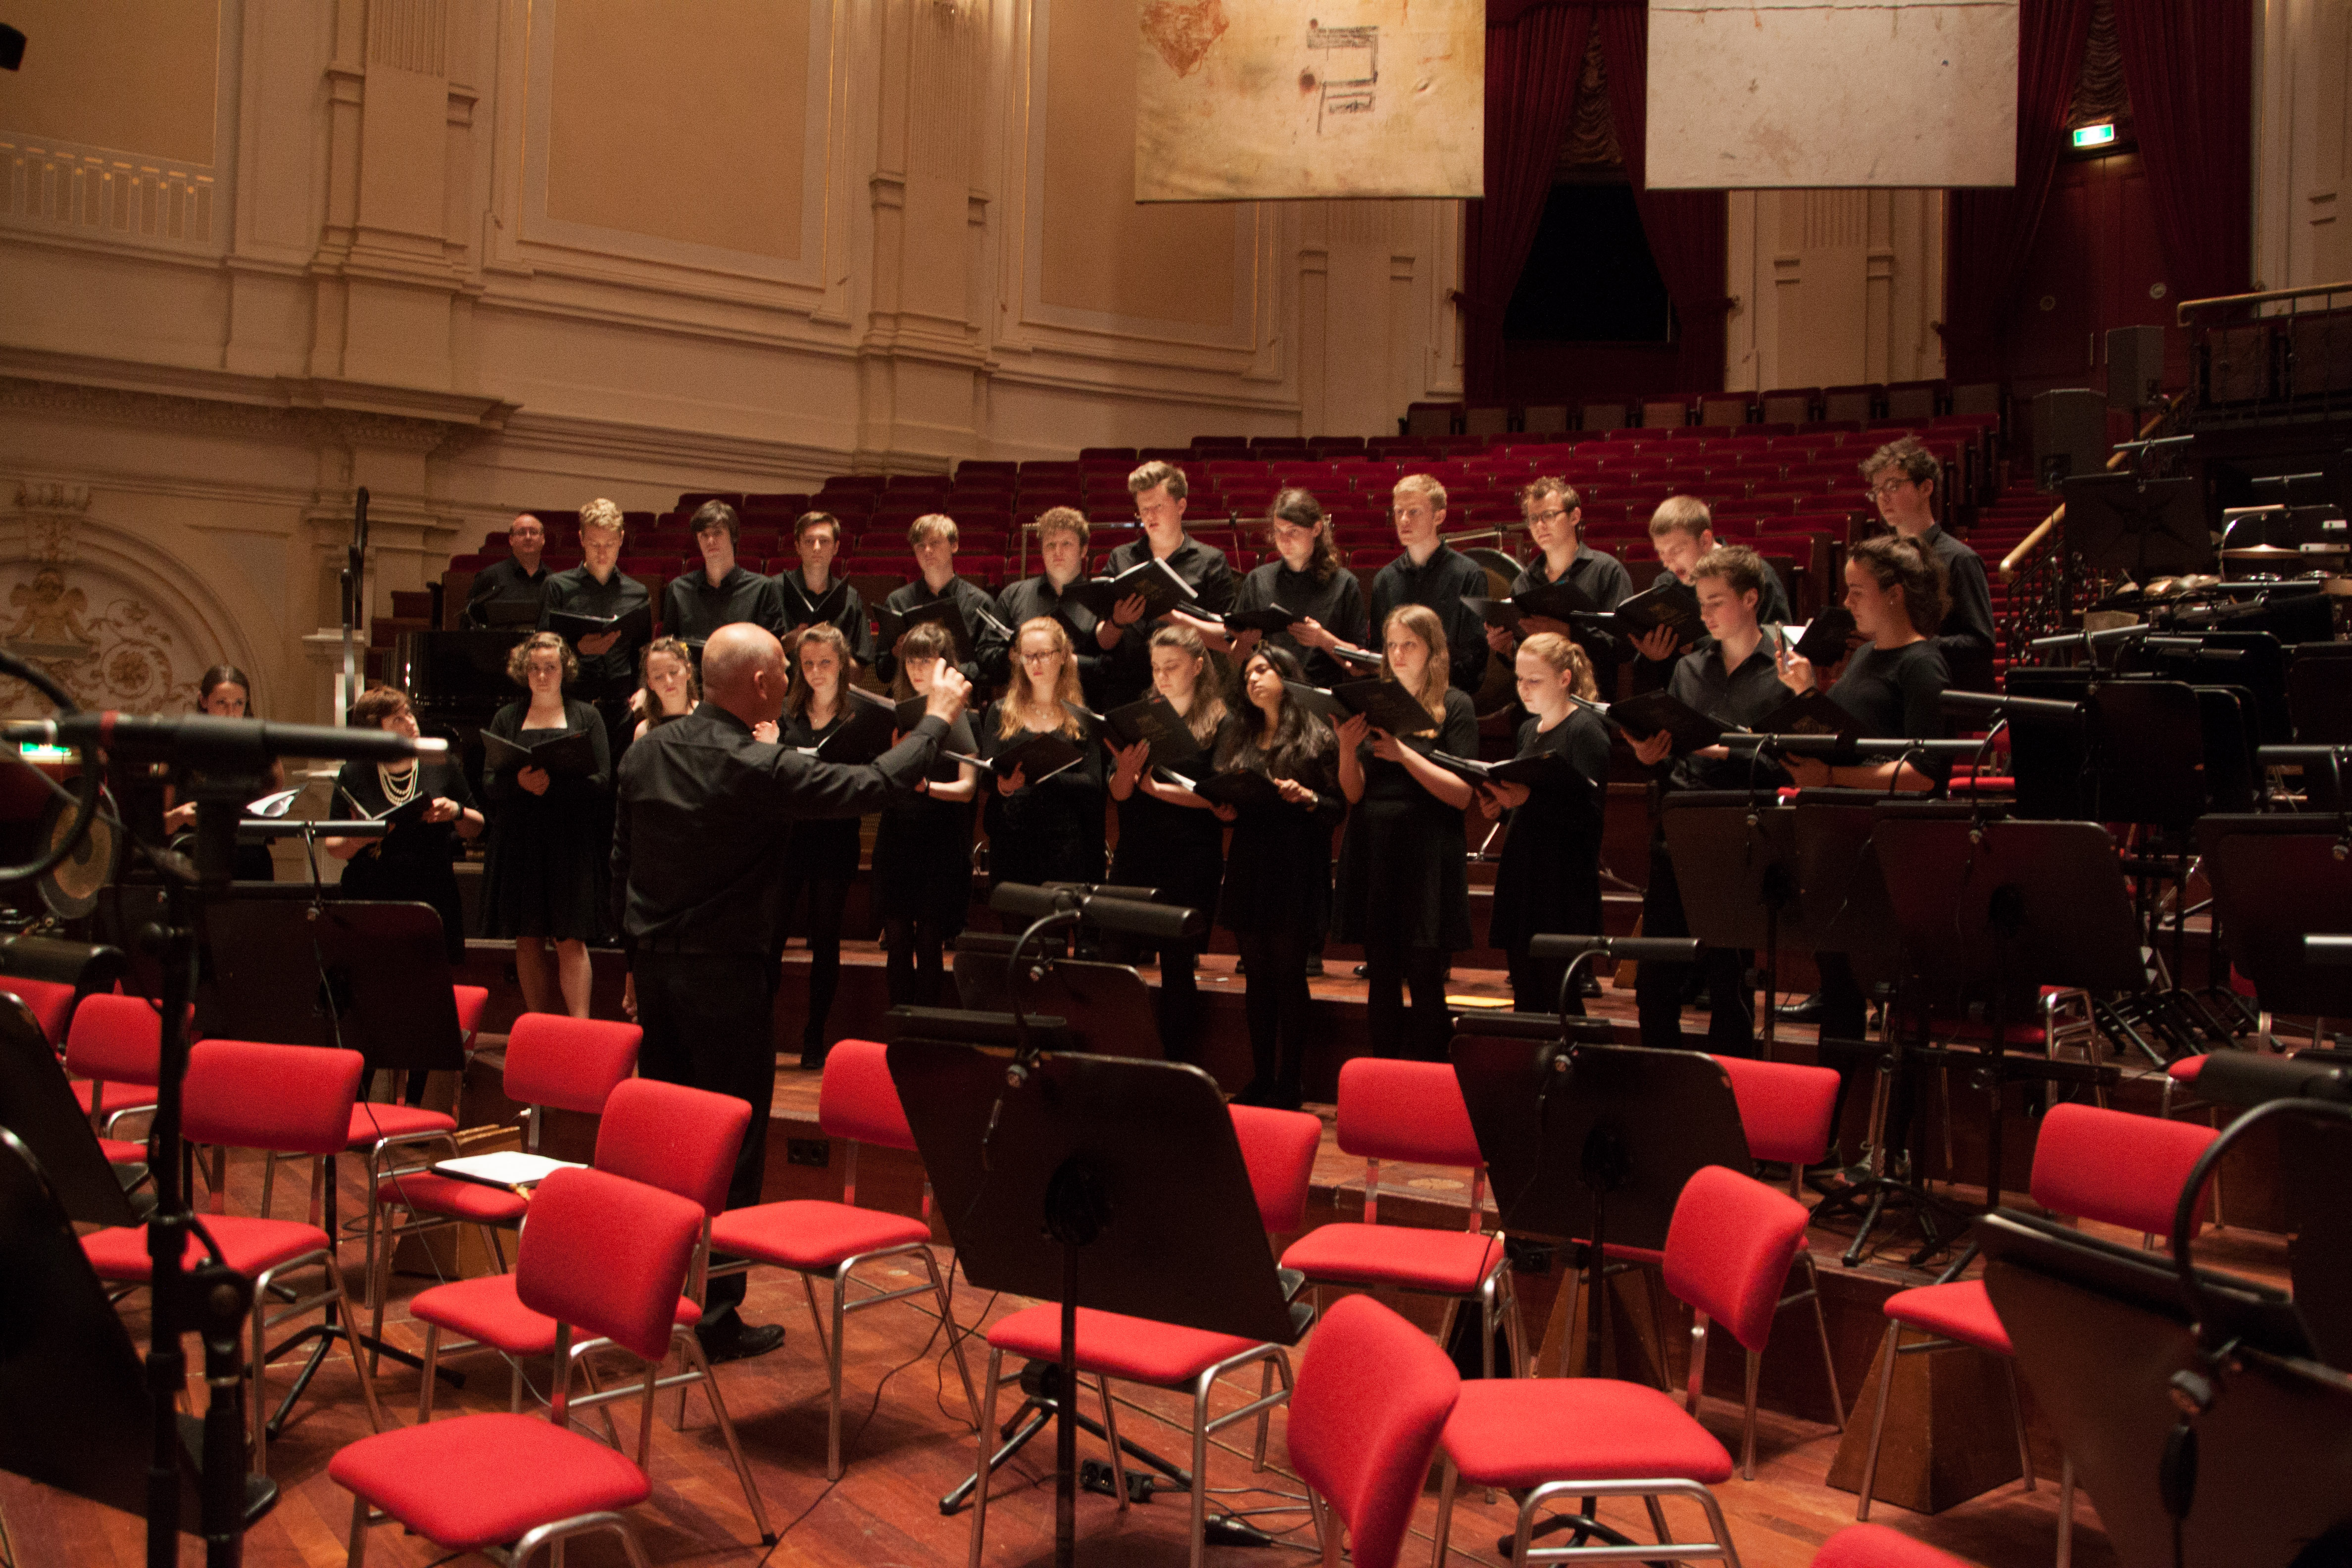 Rehearsing in the Royal Concertgebouw